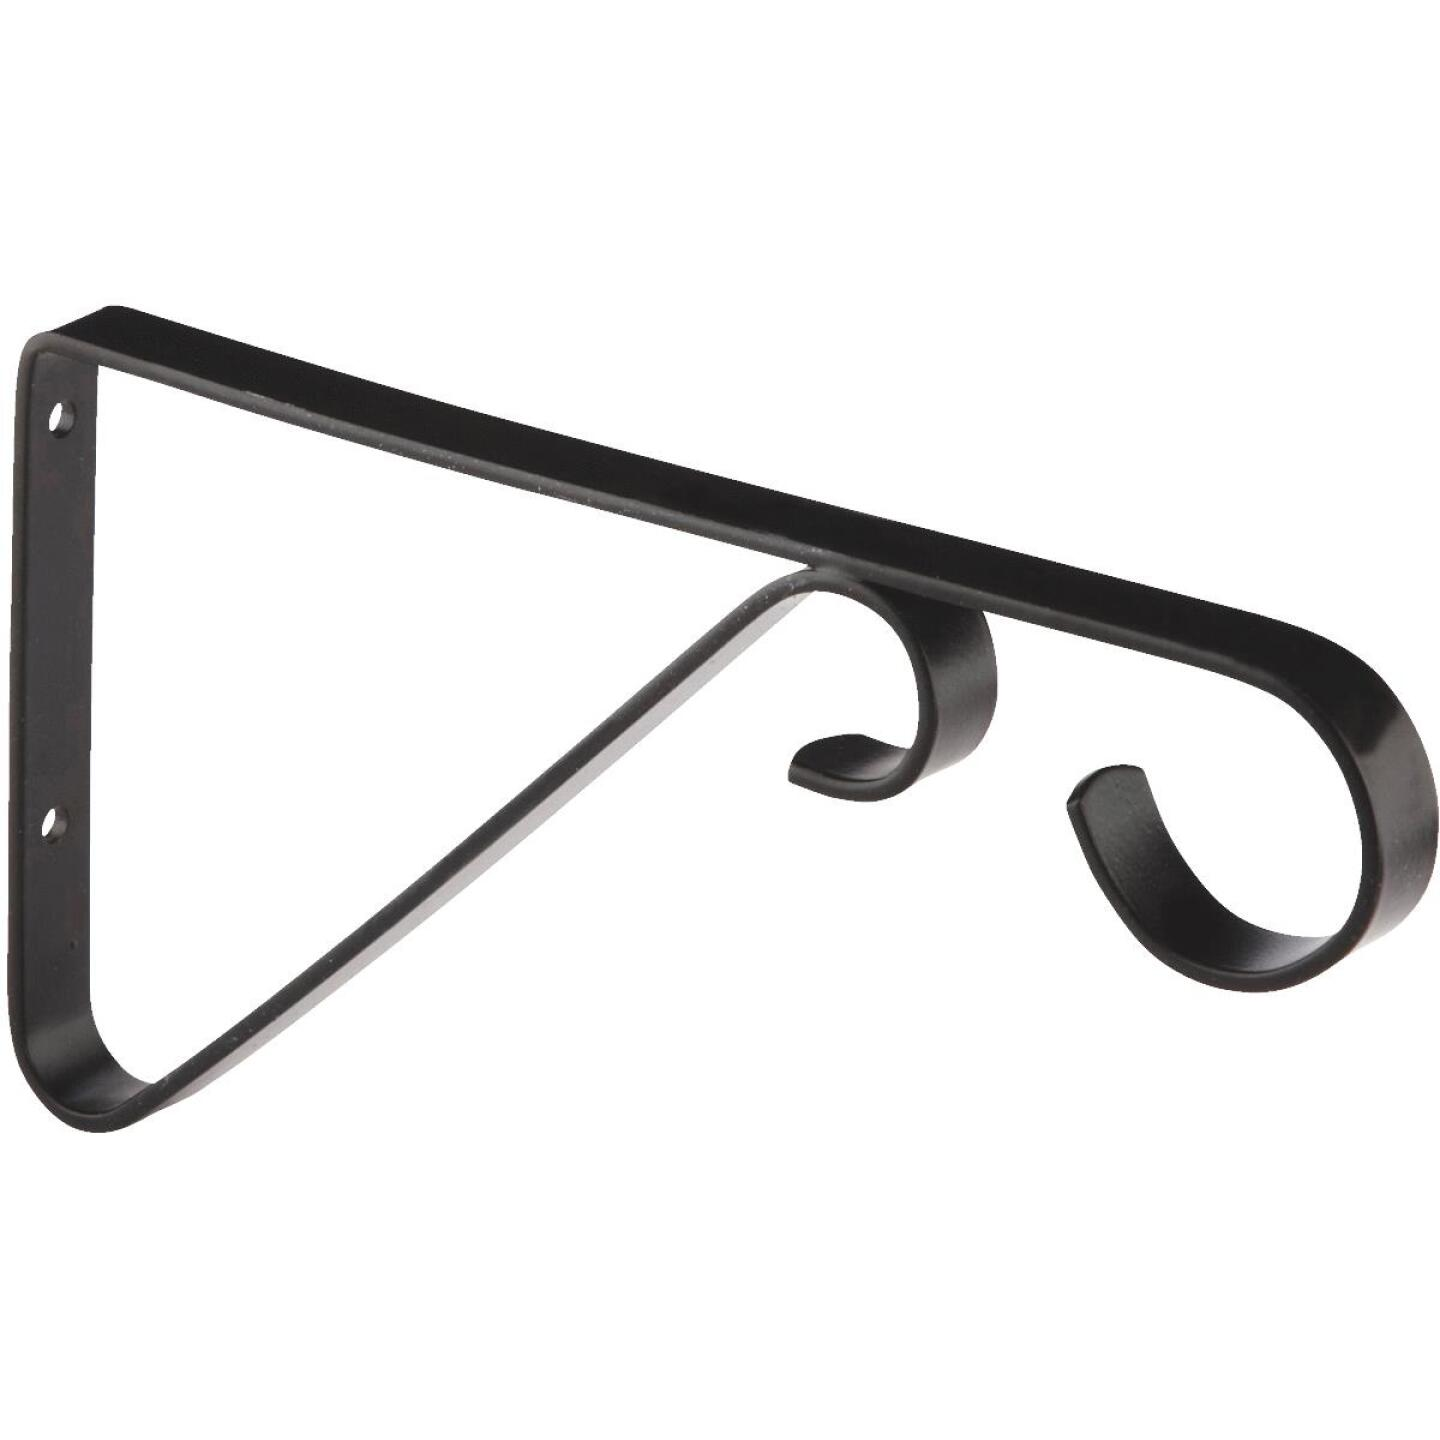 National 6 In. Black Steel Hanging Plant Bracket Image 2